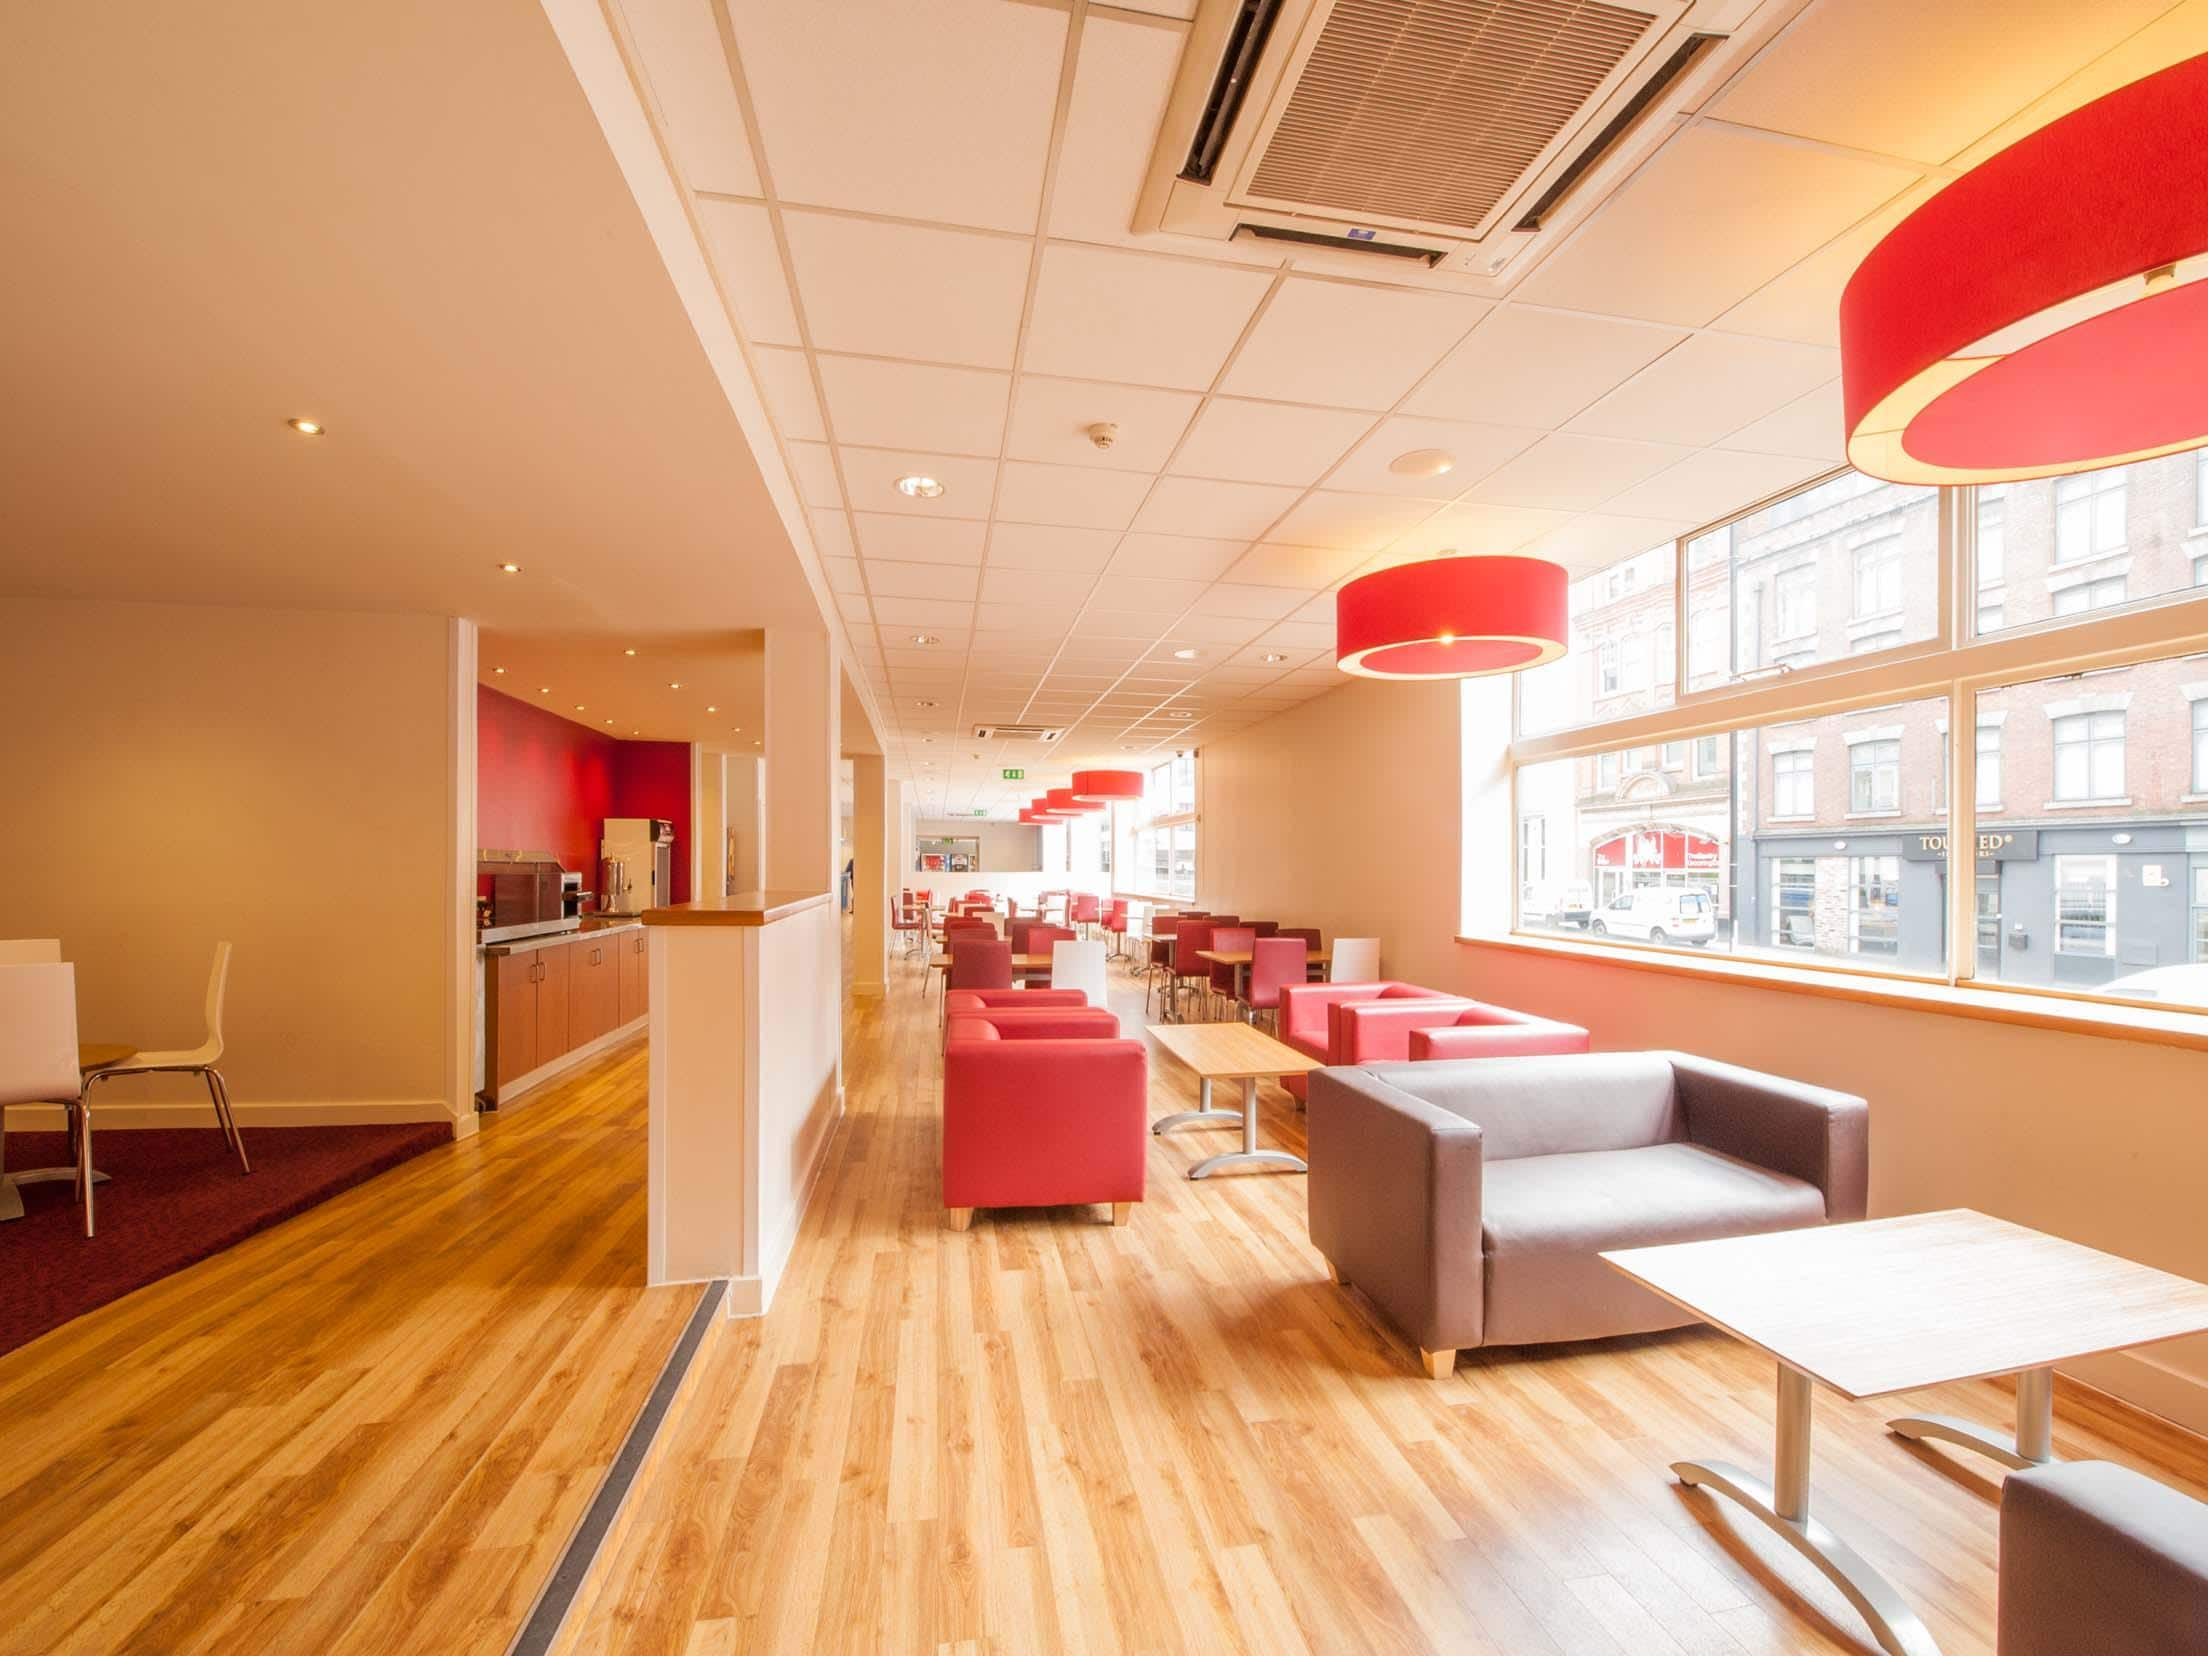 Travelodge Manchester Central Hotel Manchester Central Hotels - Travelodge location map uk